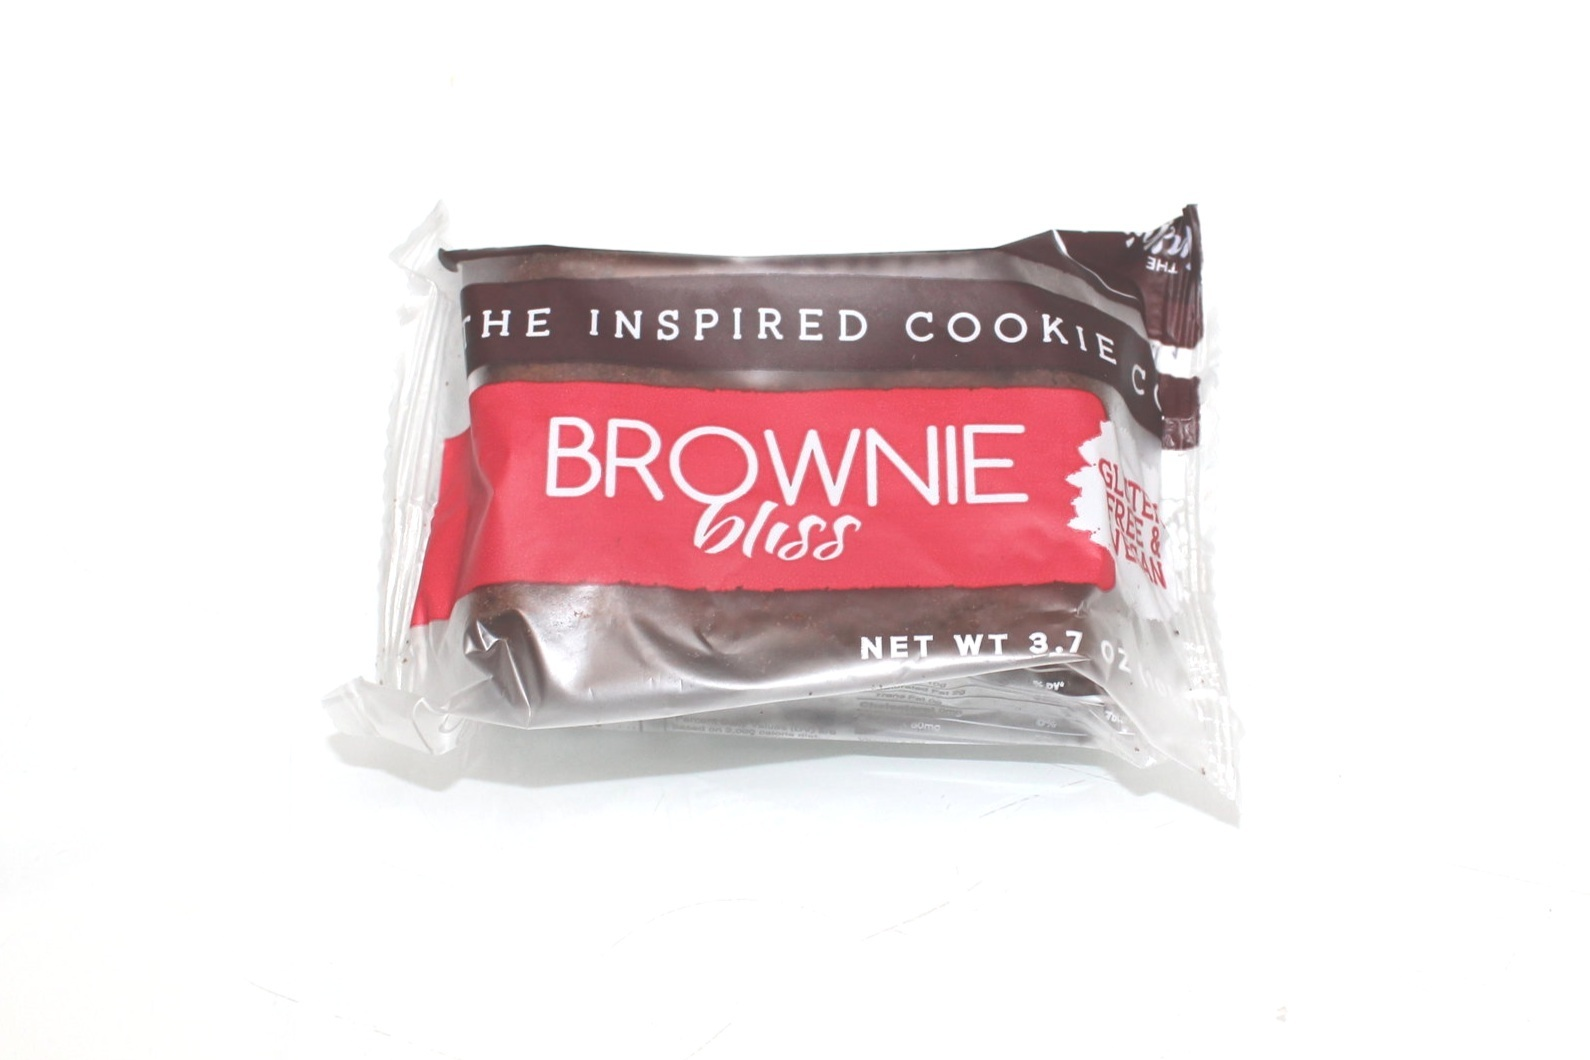 Inspired Brownie